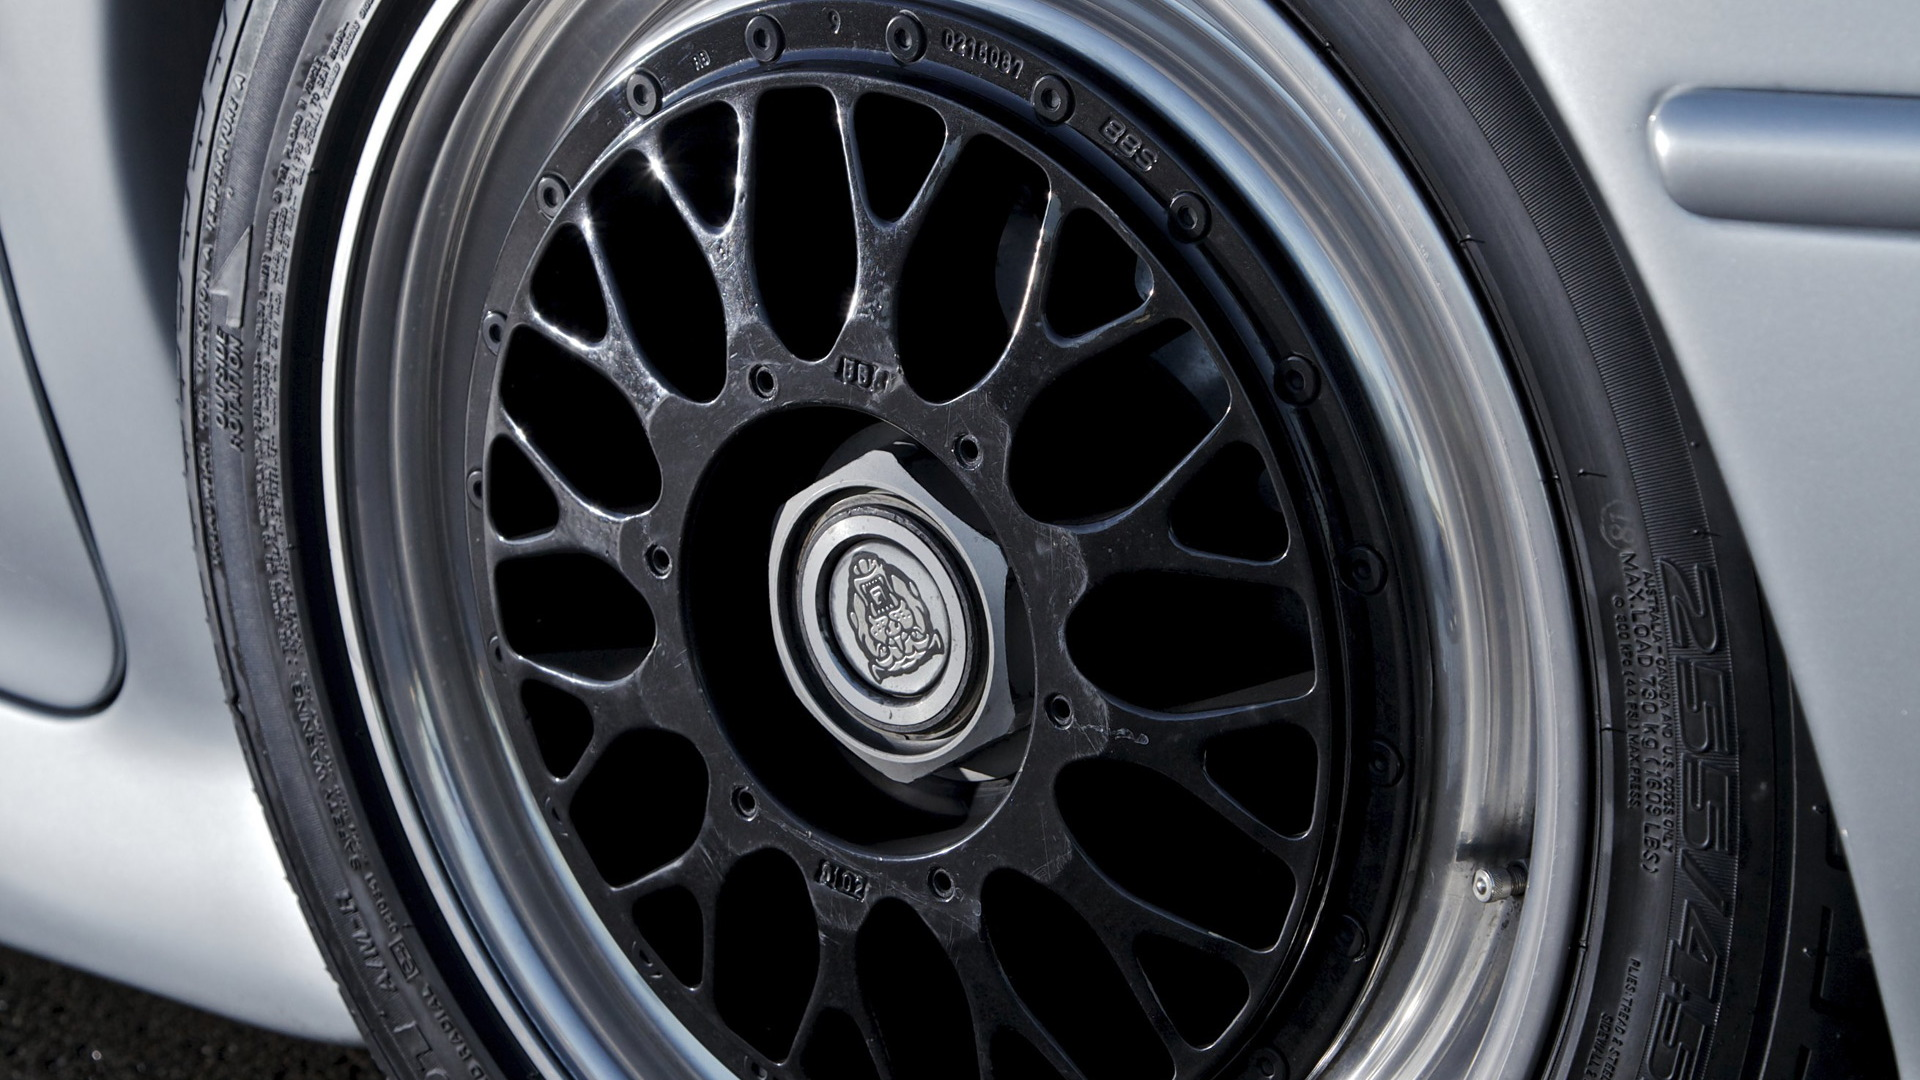 New Bridgestone tire for the Jaguar XJ220